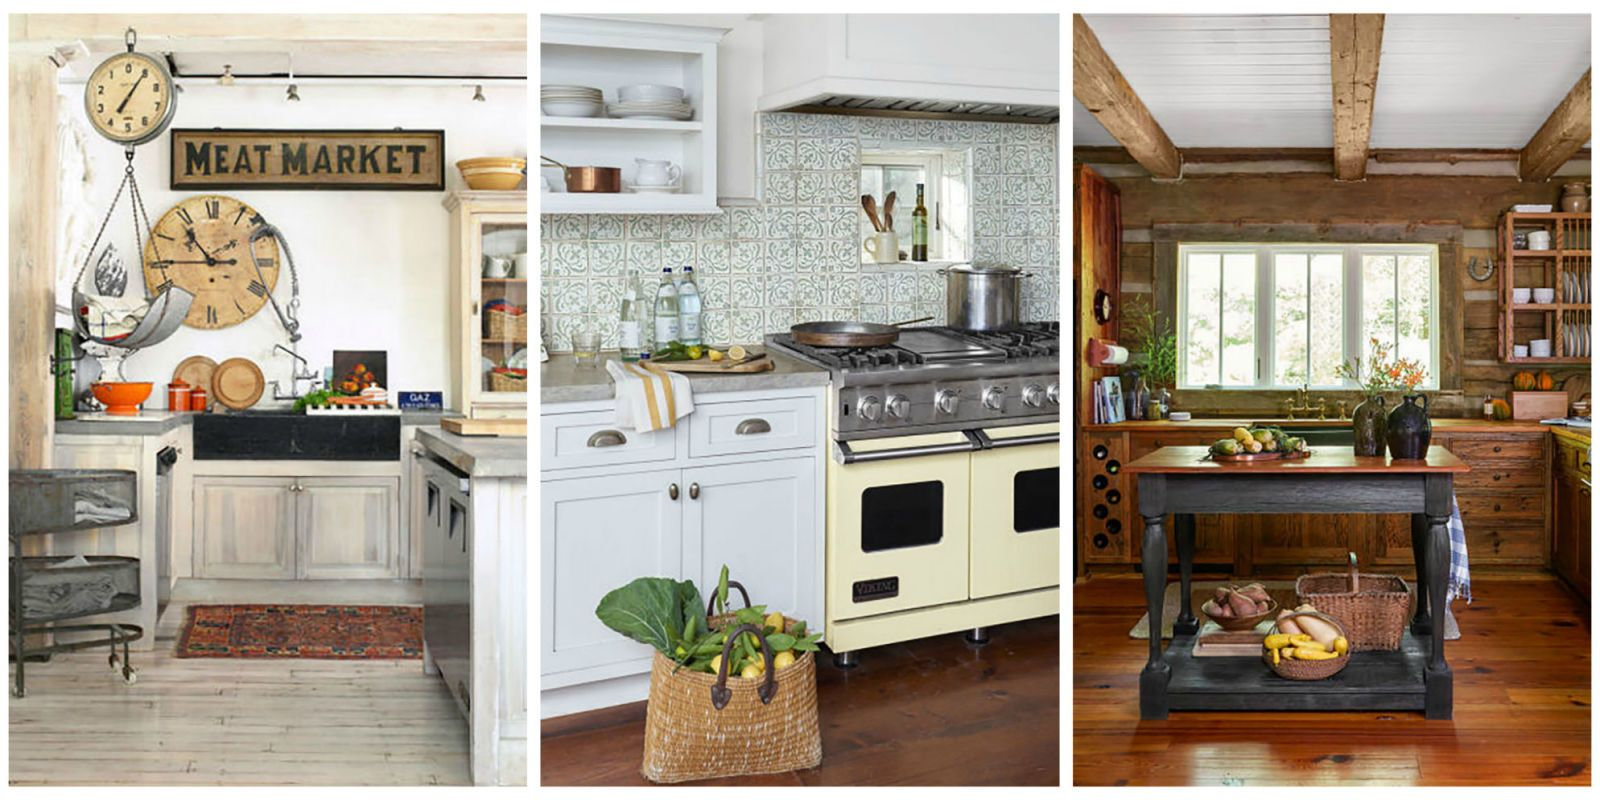 Rustic Decor Ideas For Kitchens